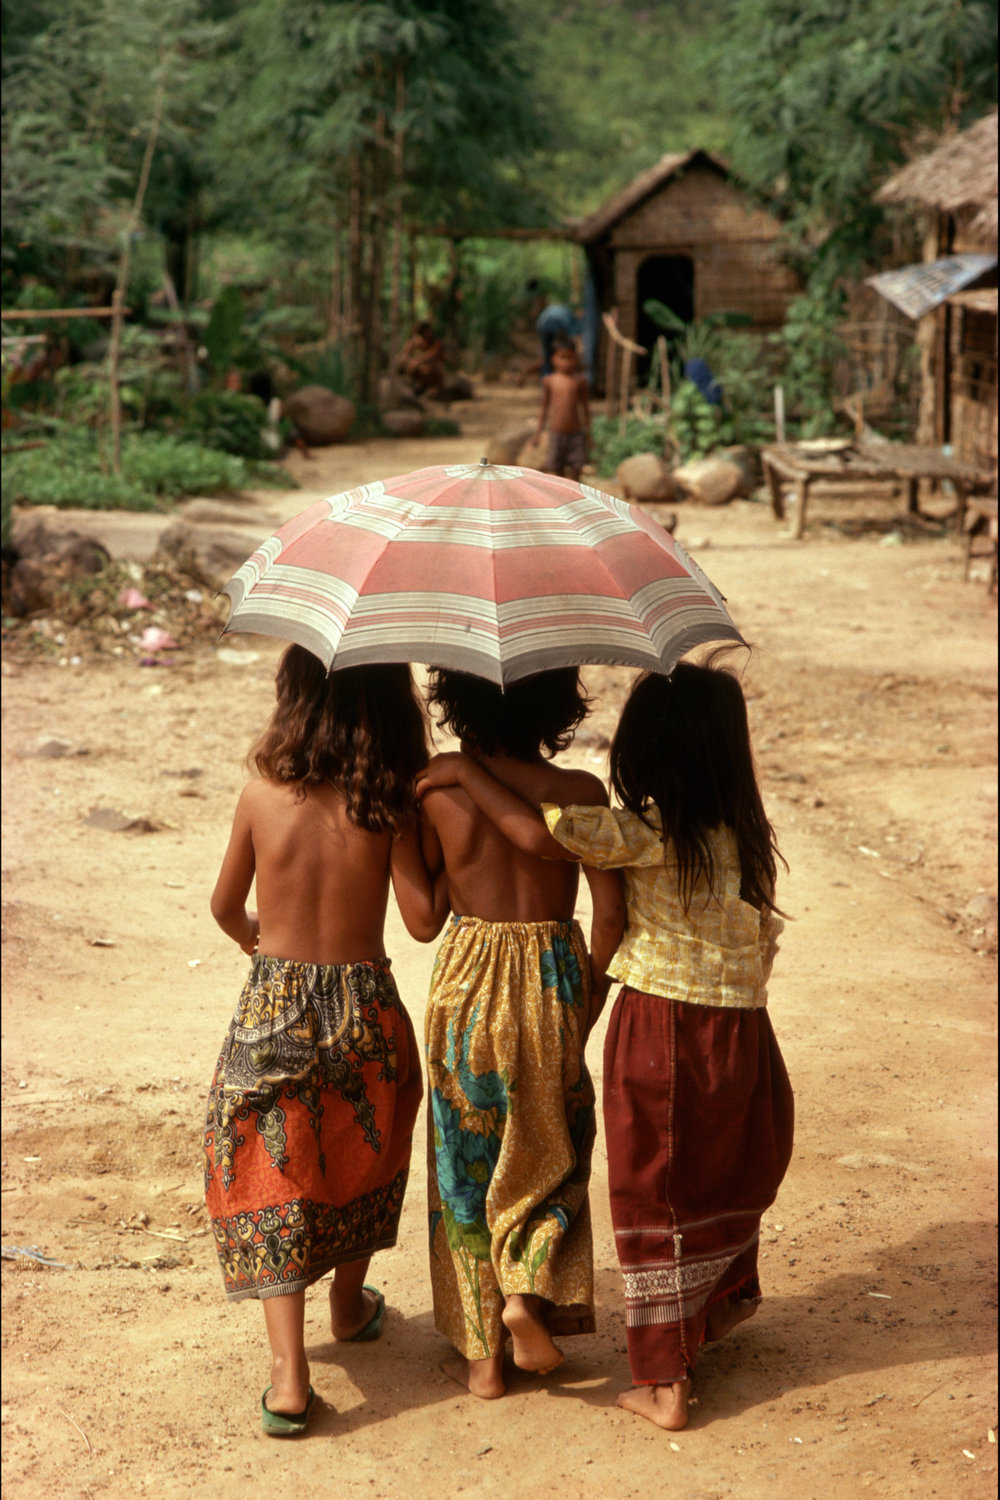 """Cambodians. 1988.<span class=""""photo-essays-link""""><span class=""""separator"""">・</span><a href=""""/photo-essays"""">Photo-essays</a></span>"""